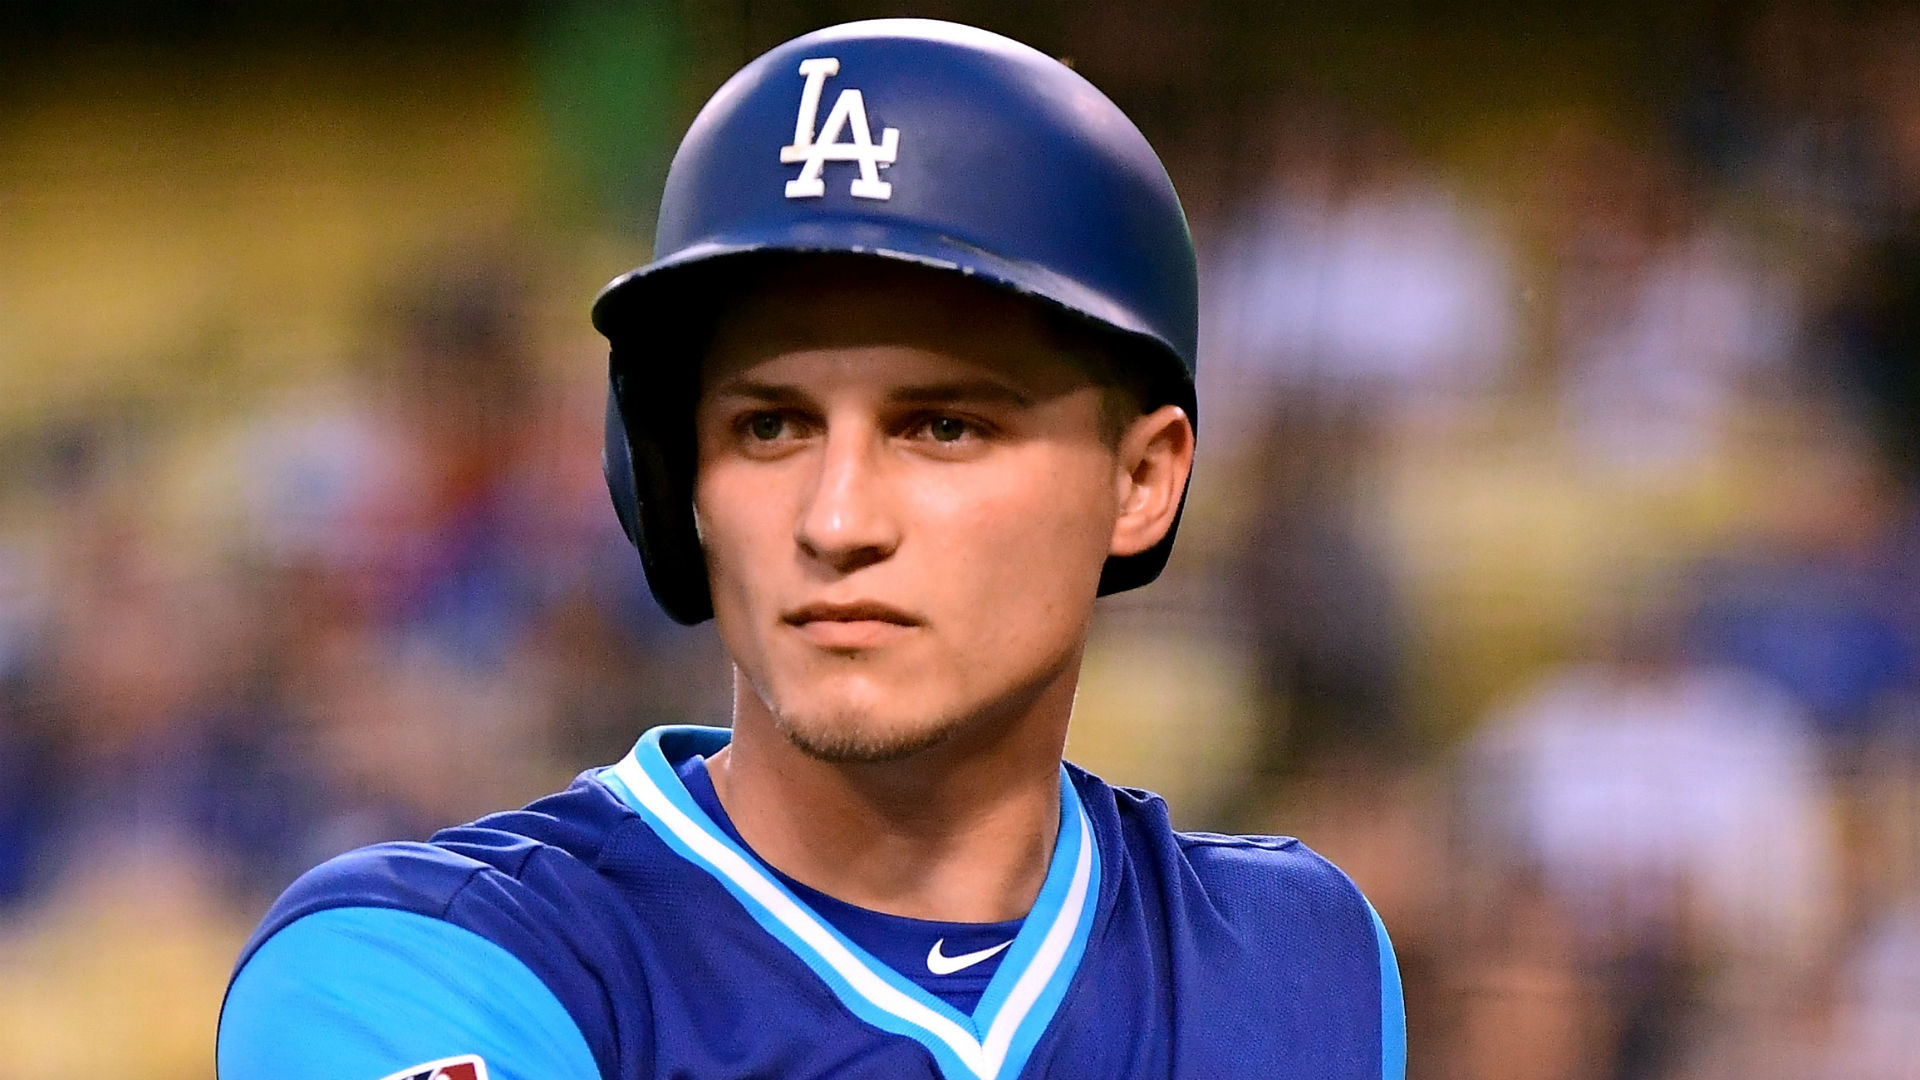 Seager was initially diagnosed with a Grade 2 hamstring strain but will undergo an MRI on Wednesday.